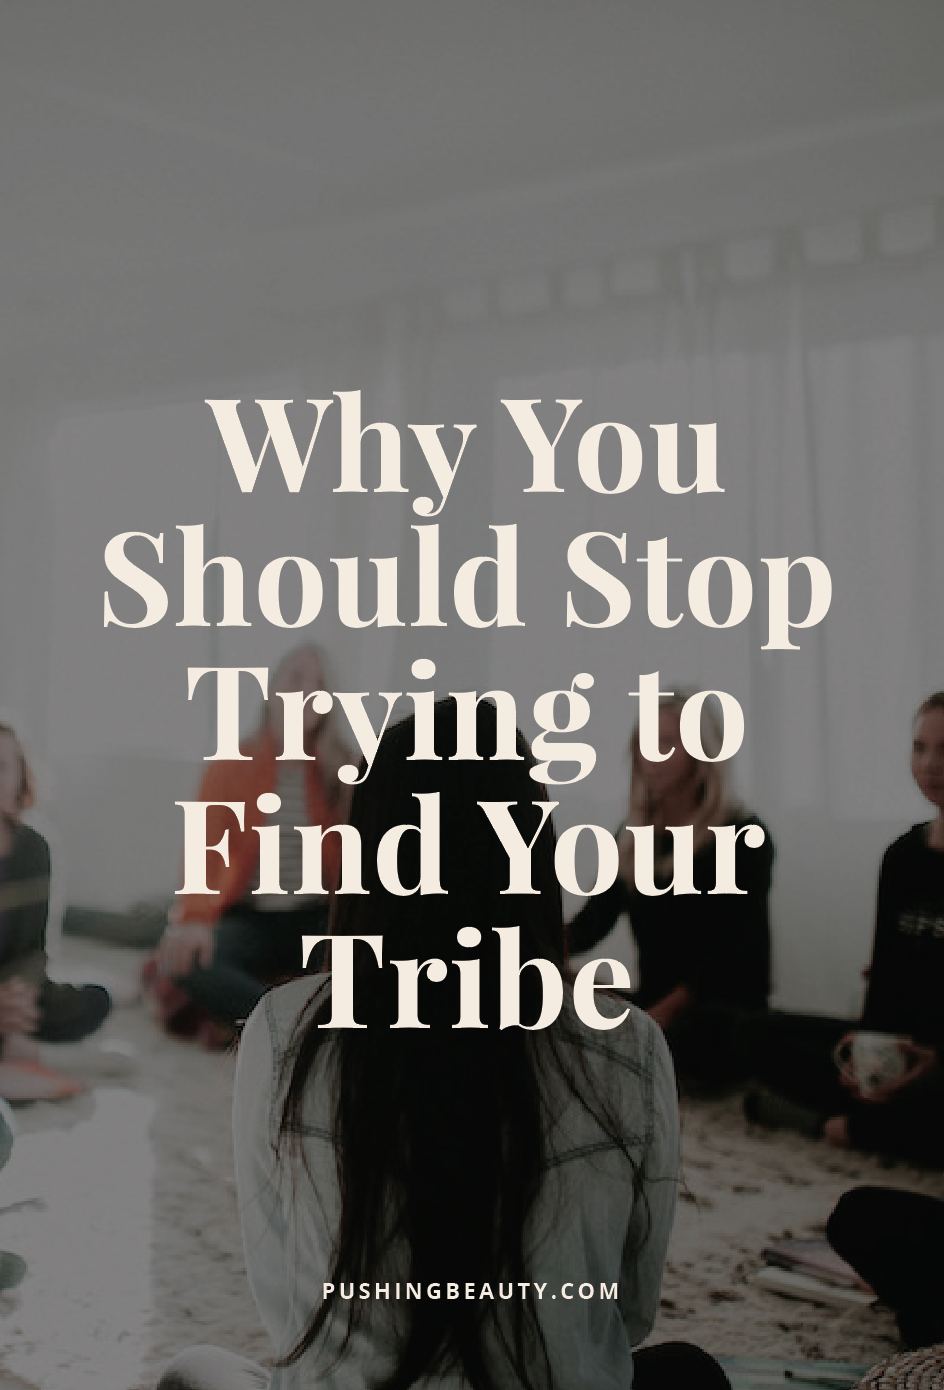 Find+Your+Tribe.png